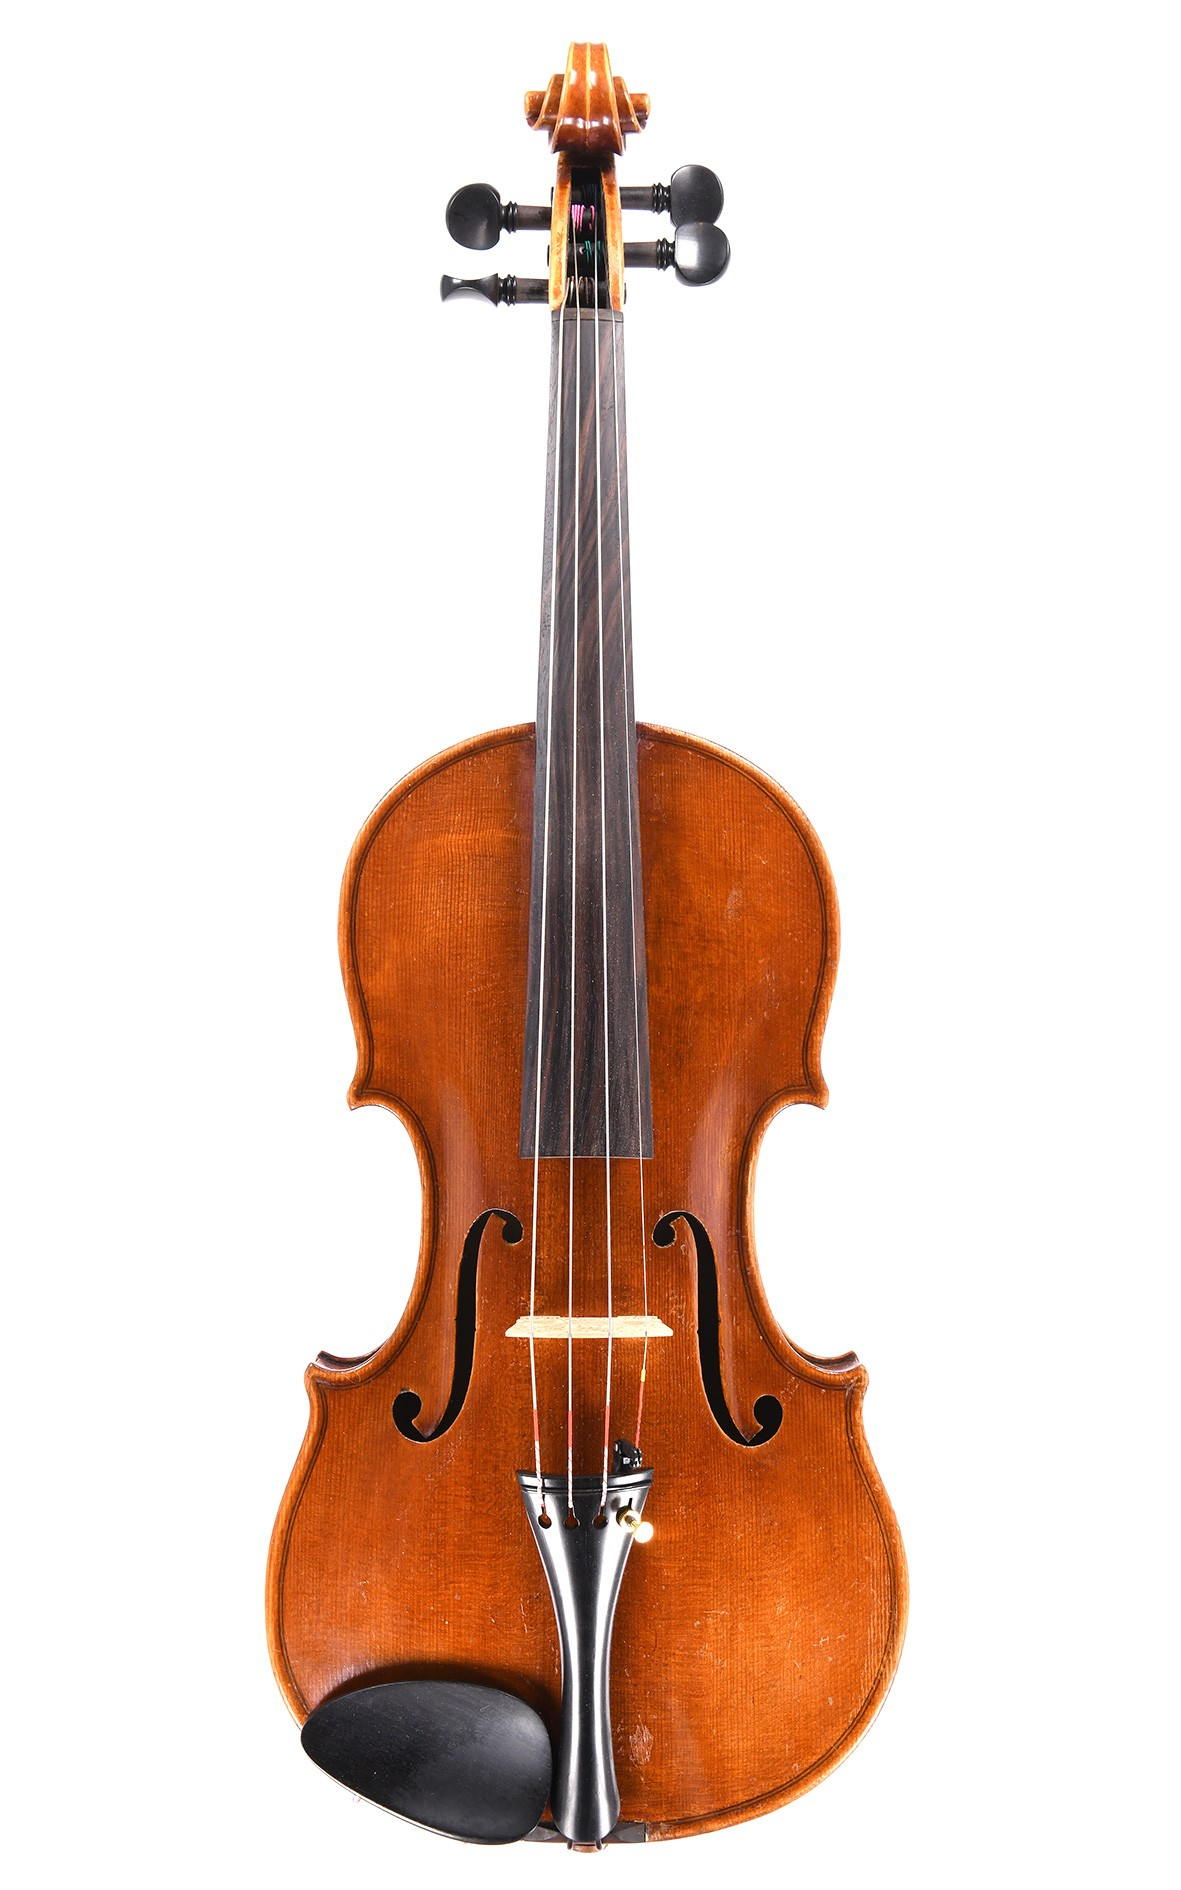 Antique Czech violin made in the Italian style